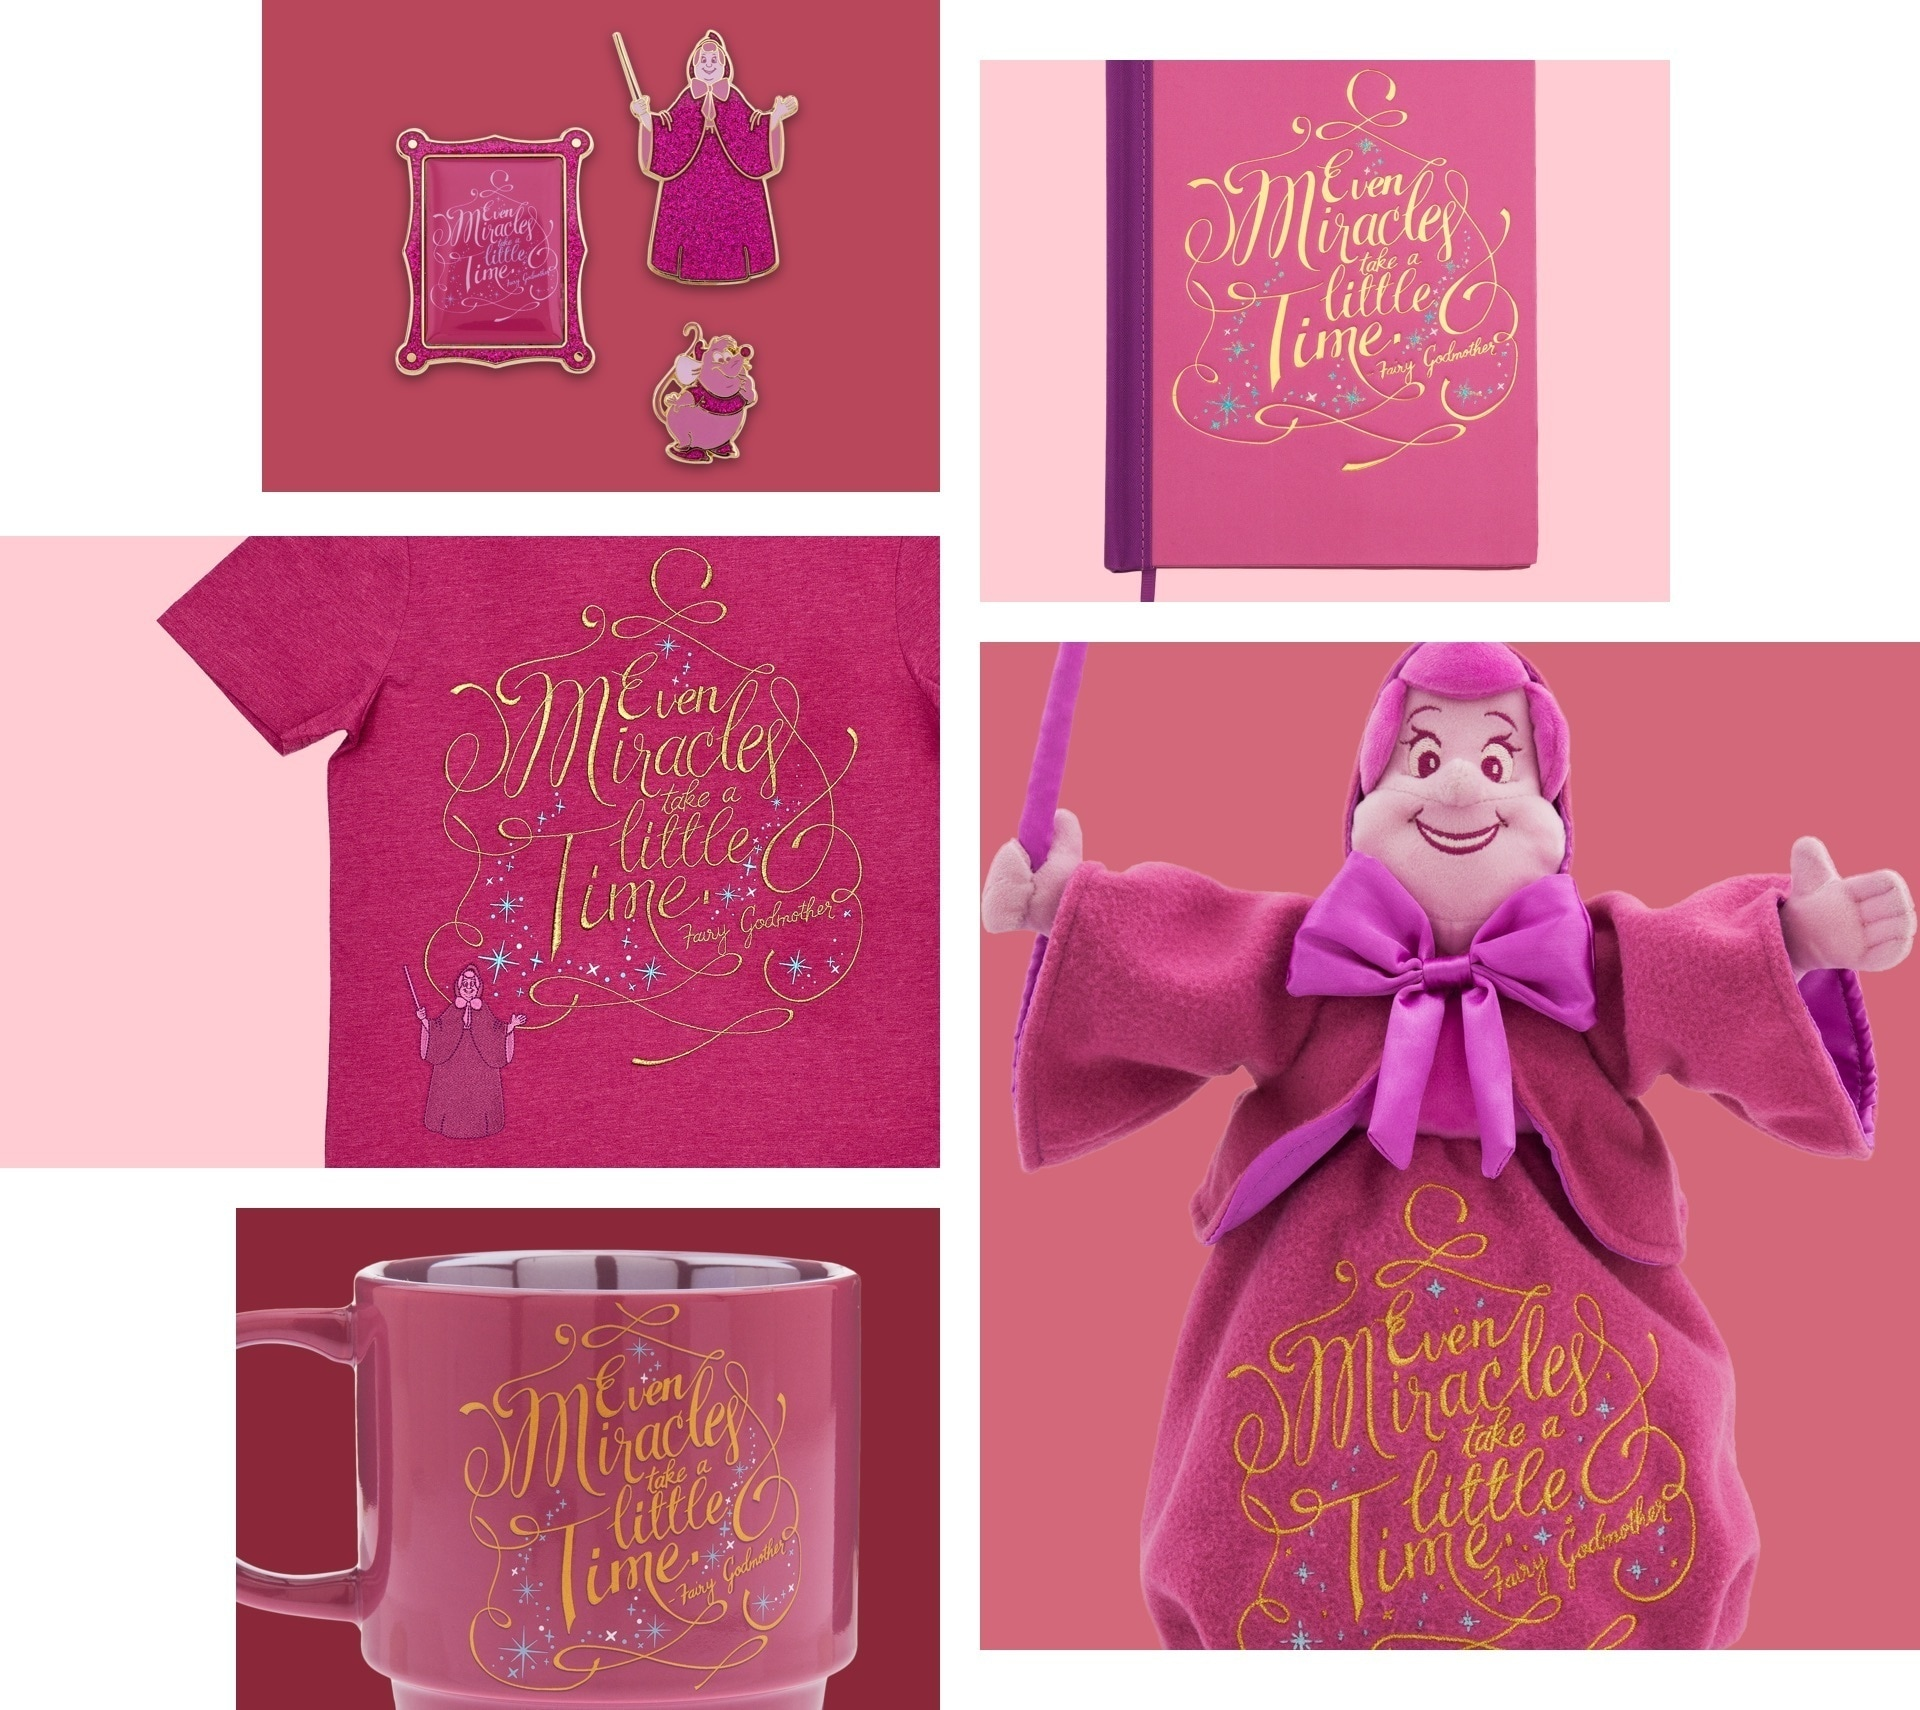 Fairy Godmother inspired Soft Toy, Notebook, Pin Set and Mug